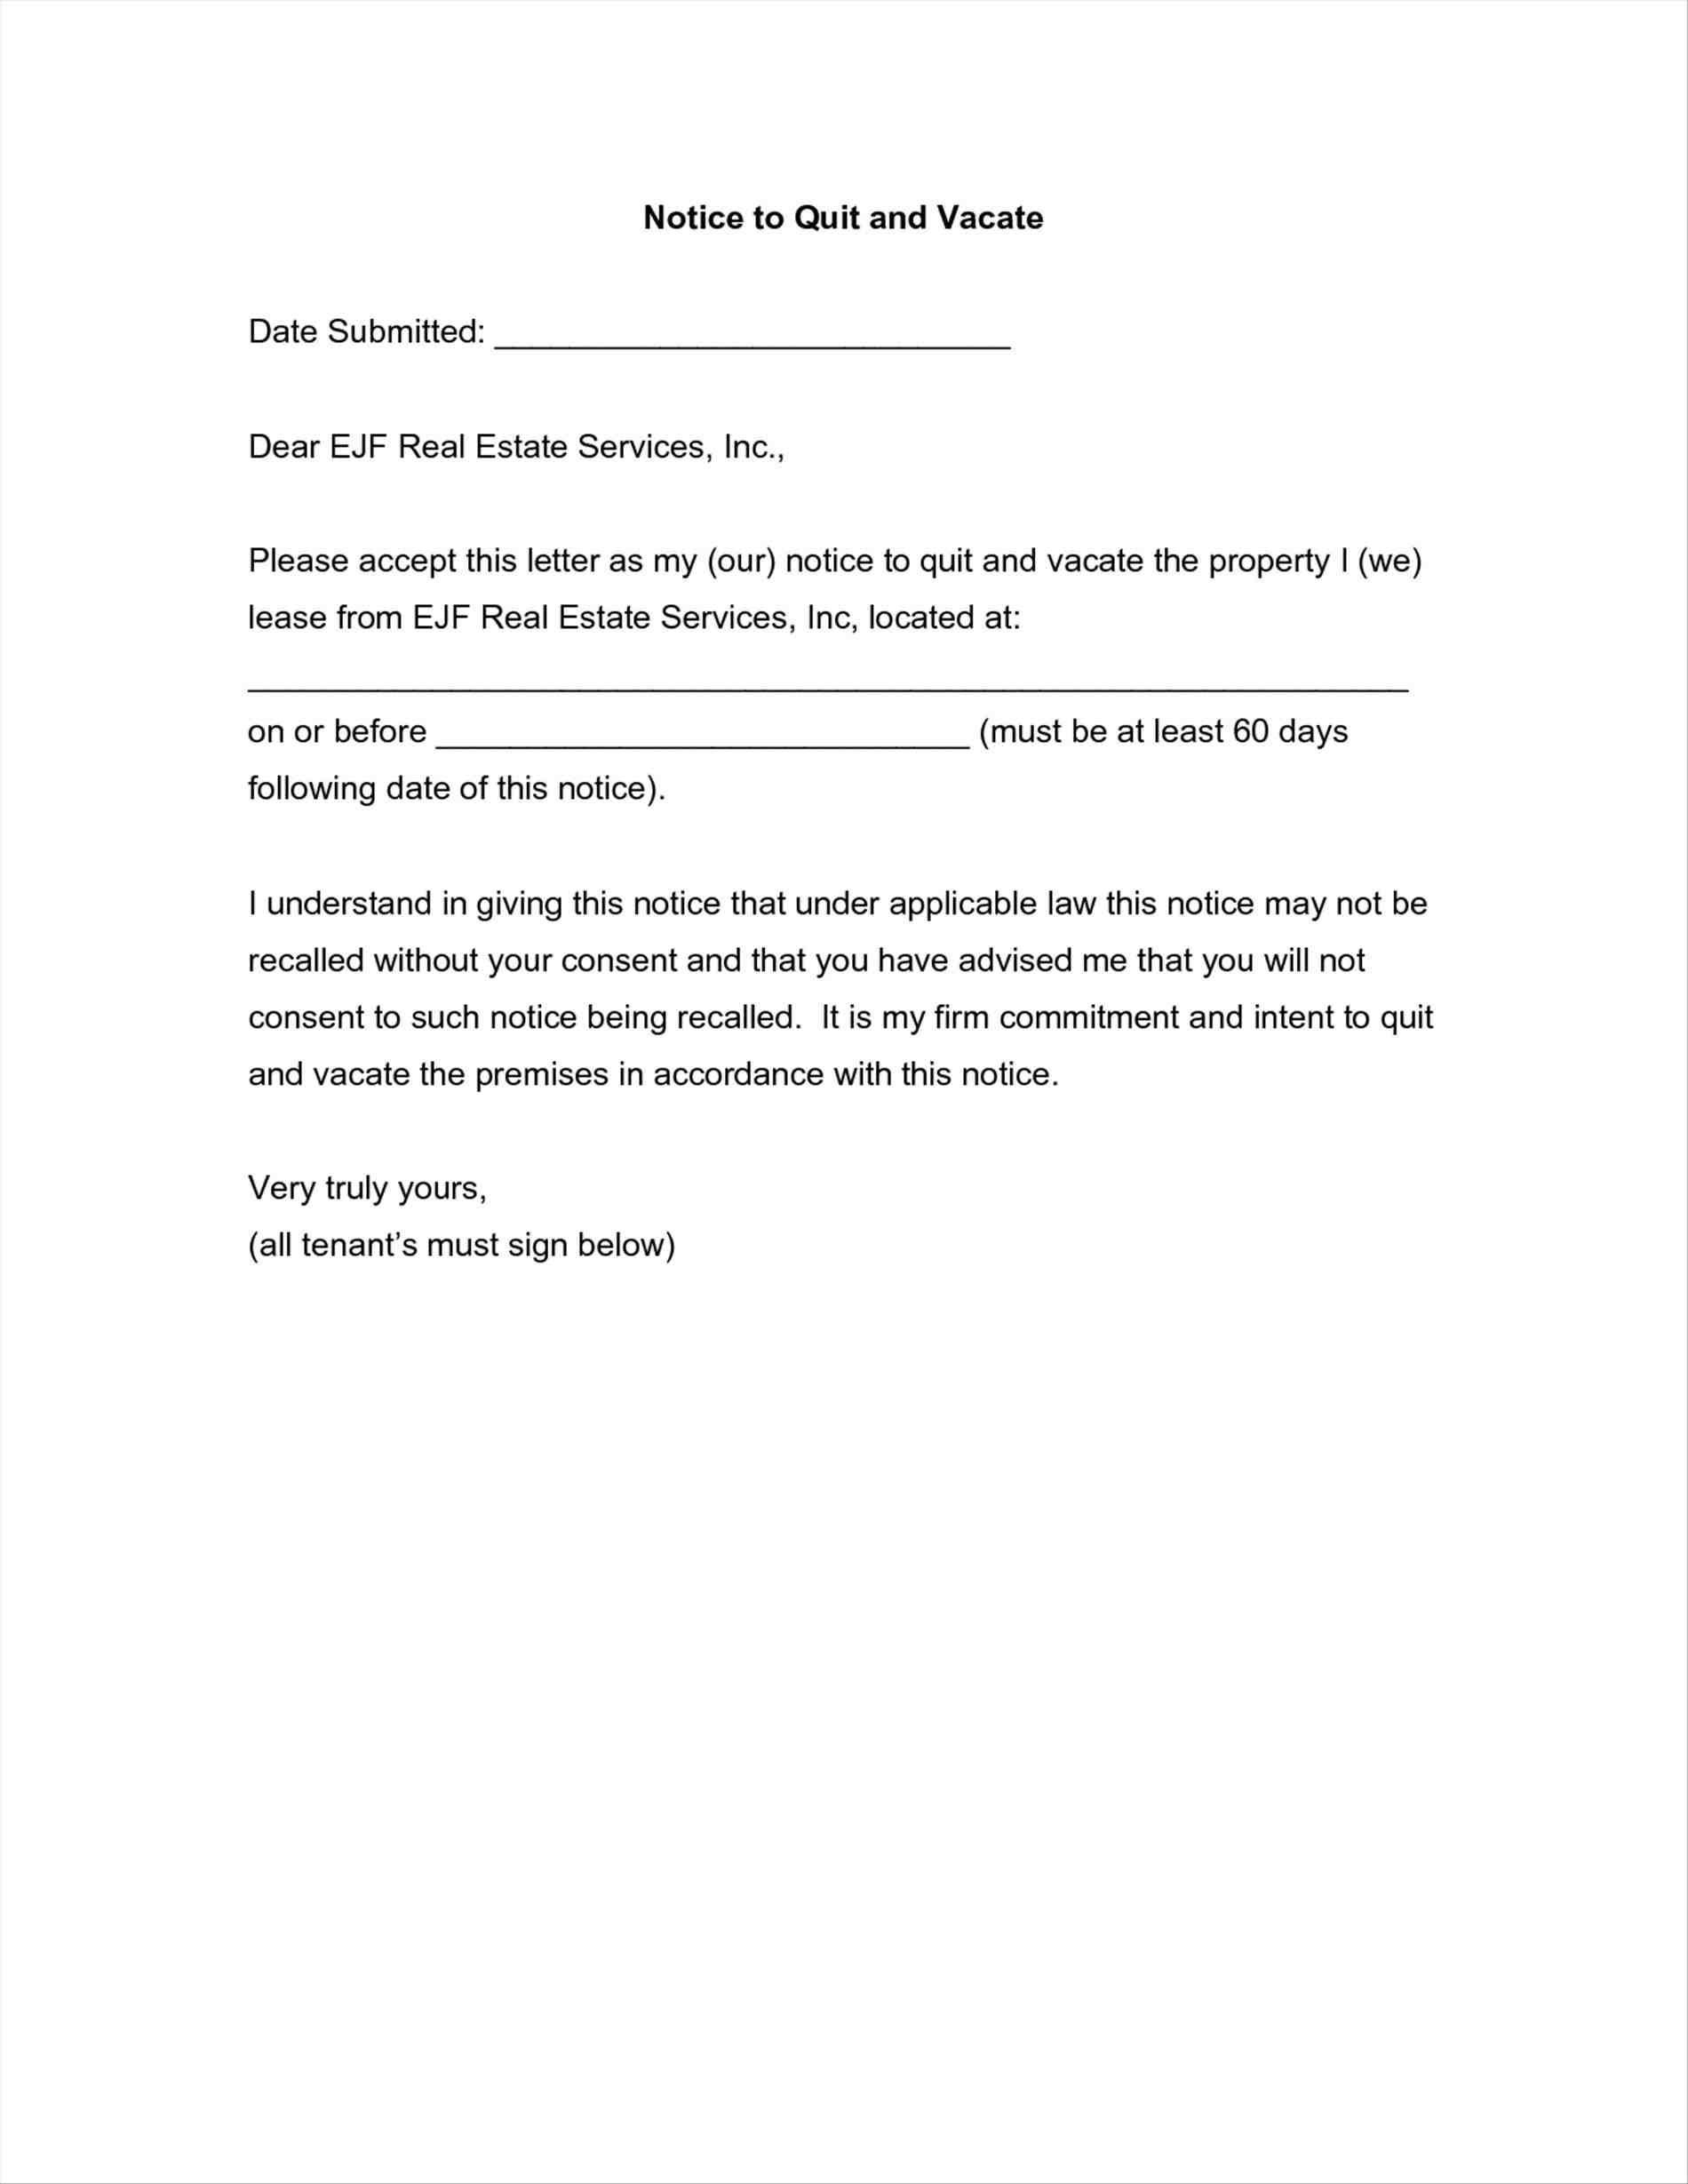 Demotion Letter Template - Template for 60 Day Notice to Vacate